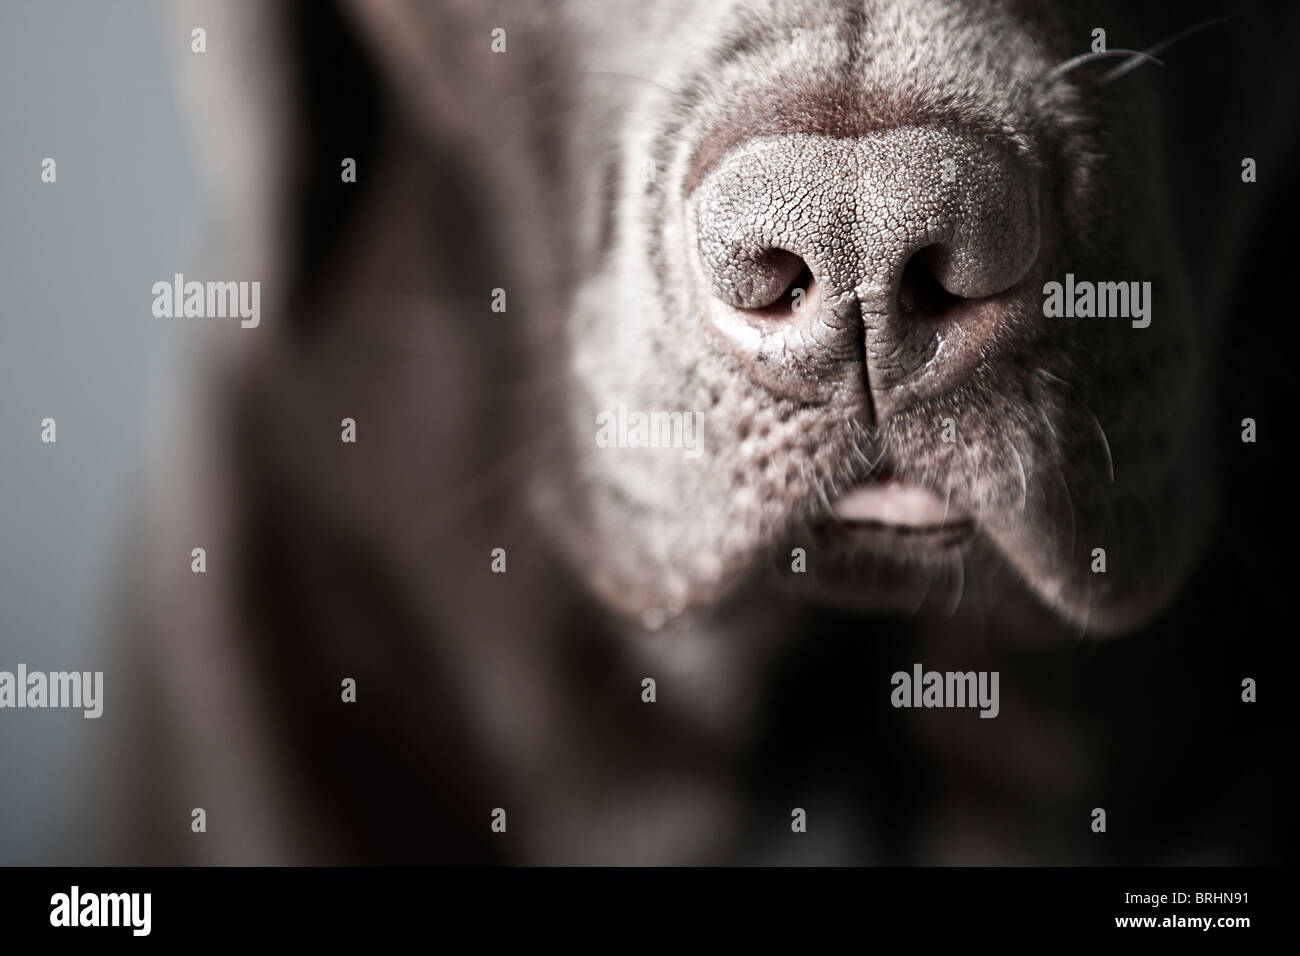 Close Up Shot of a Chocolate Labrador - Stock Image